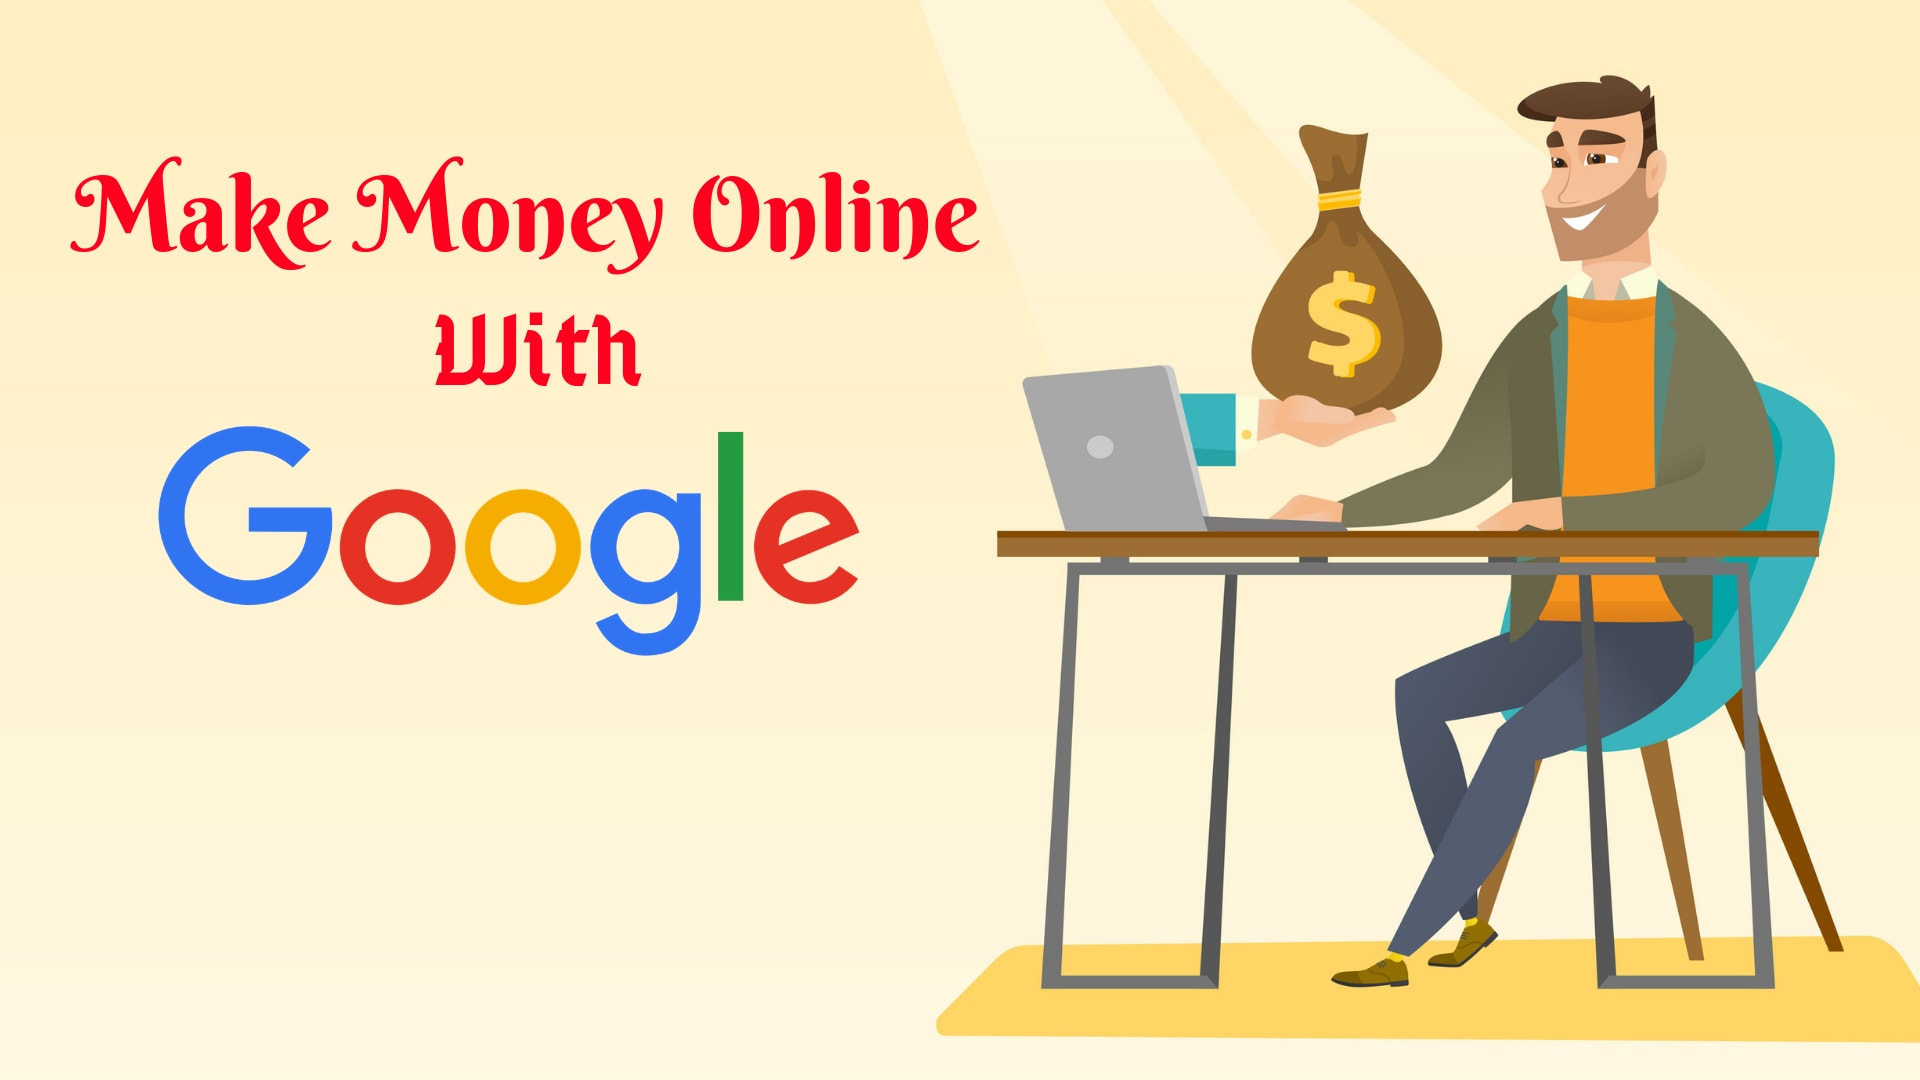 make money online with google - Makbuddies – Digital Marketing & SEO Blog